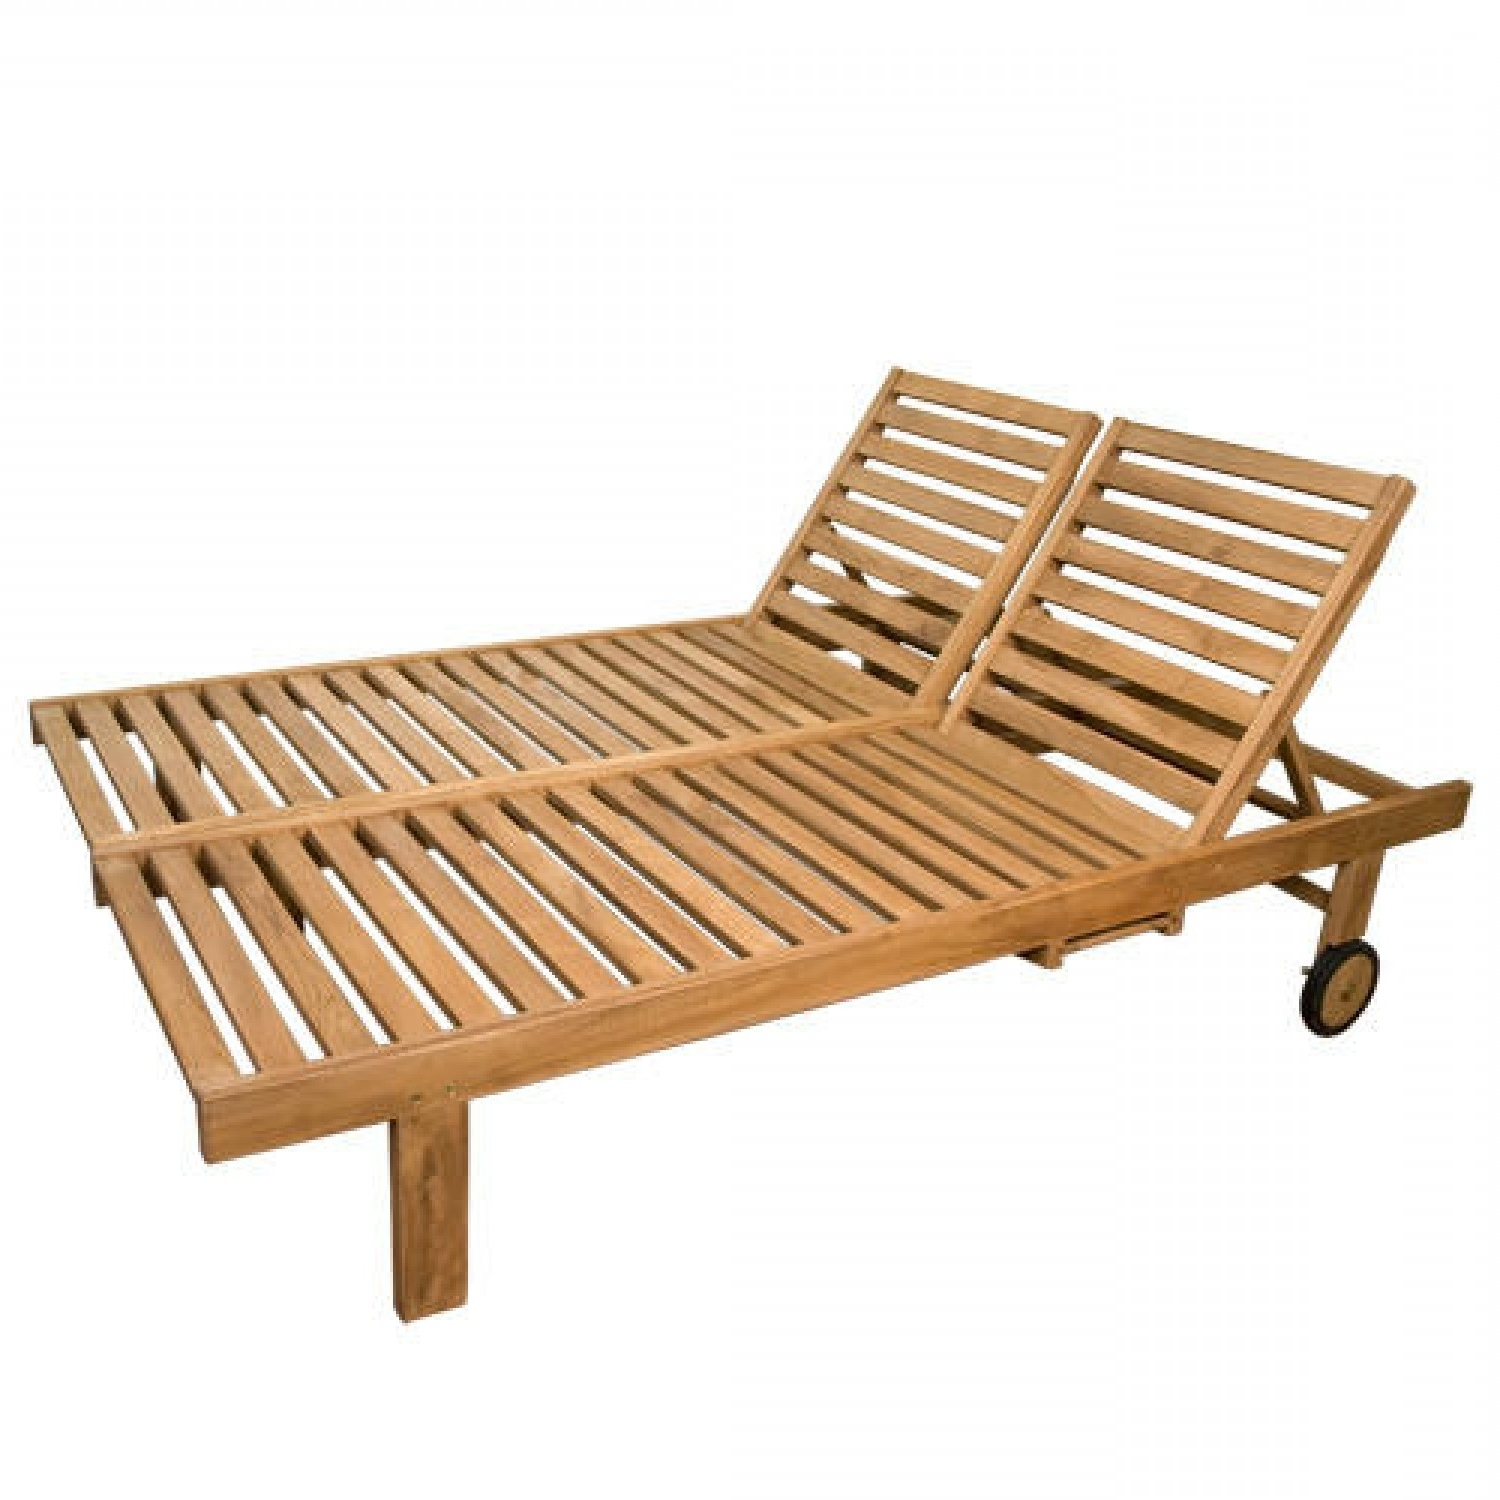 Convertible Chair : Teak Lounge Chair Outdoor Chaise Lounge' Best Intended For Current Wood Chaise Lounge Chairs (View 12 of 15)